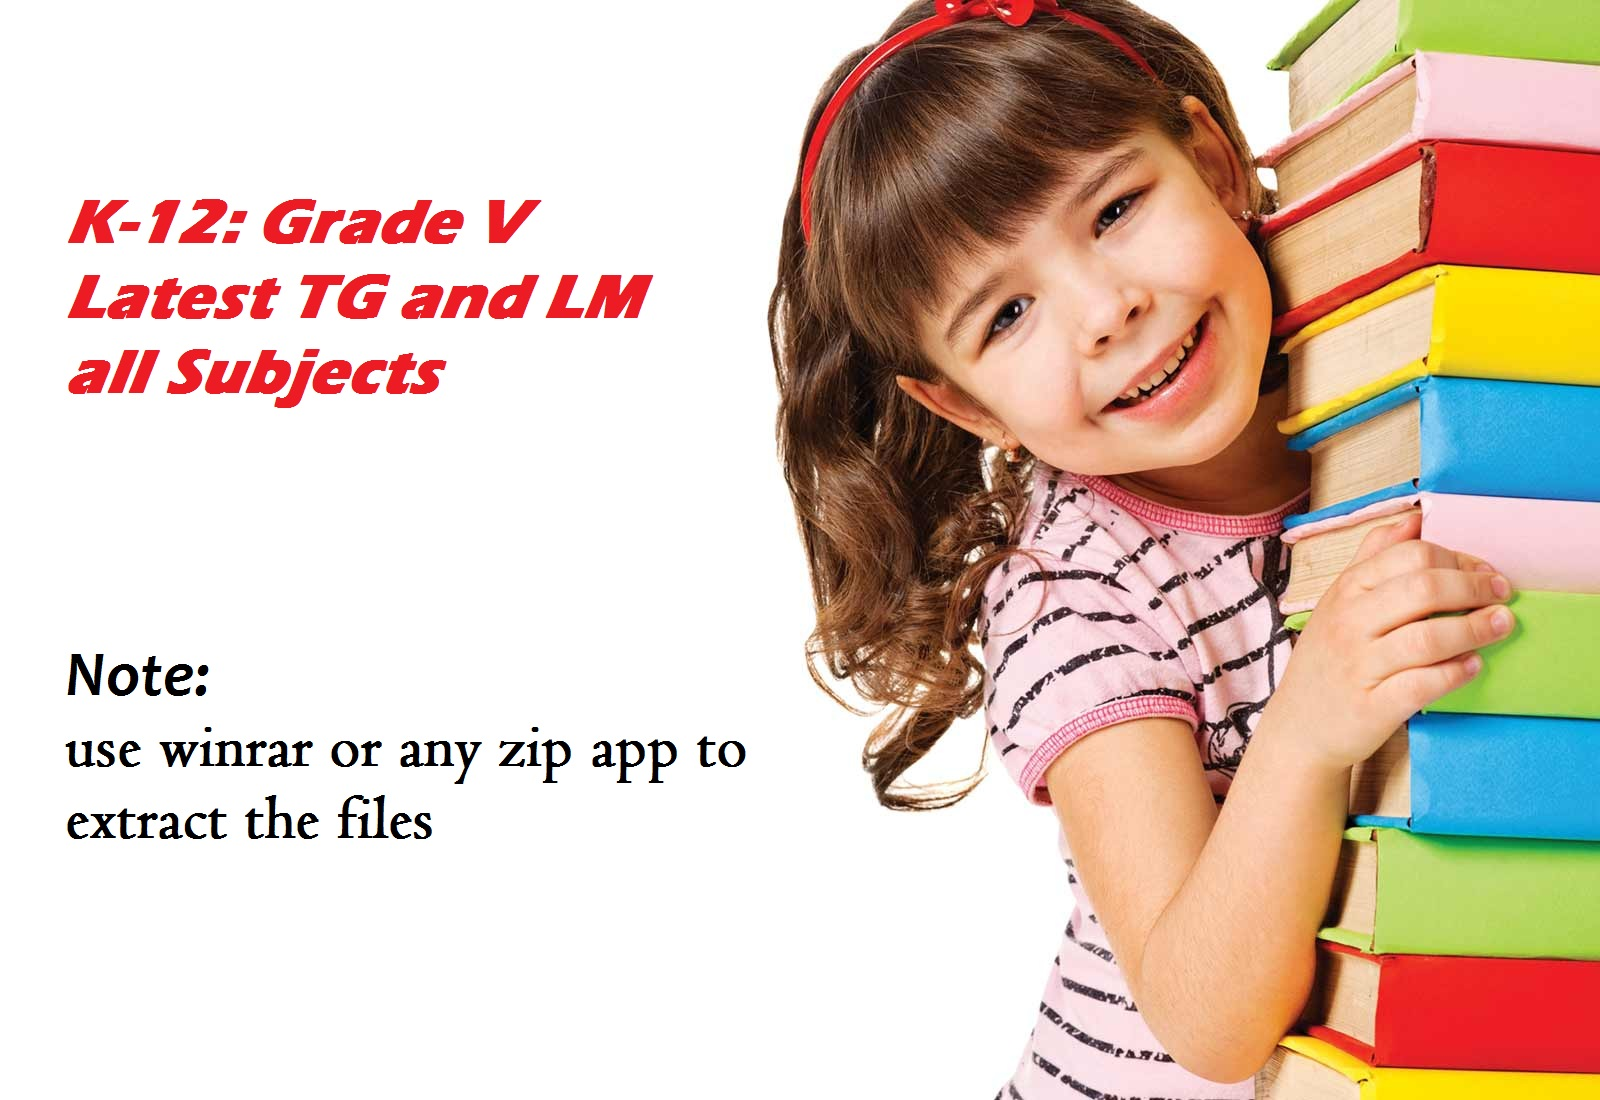 tagadepedfiles: Complete TG and LM for Grade V